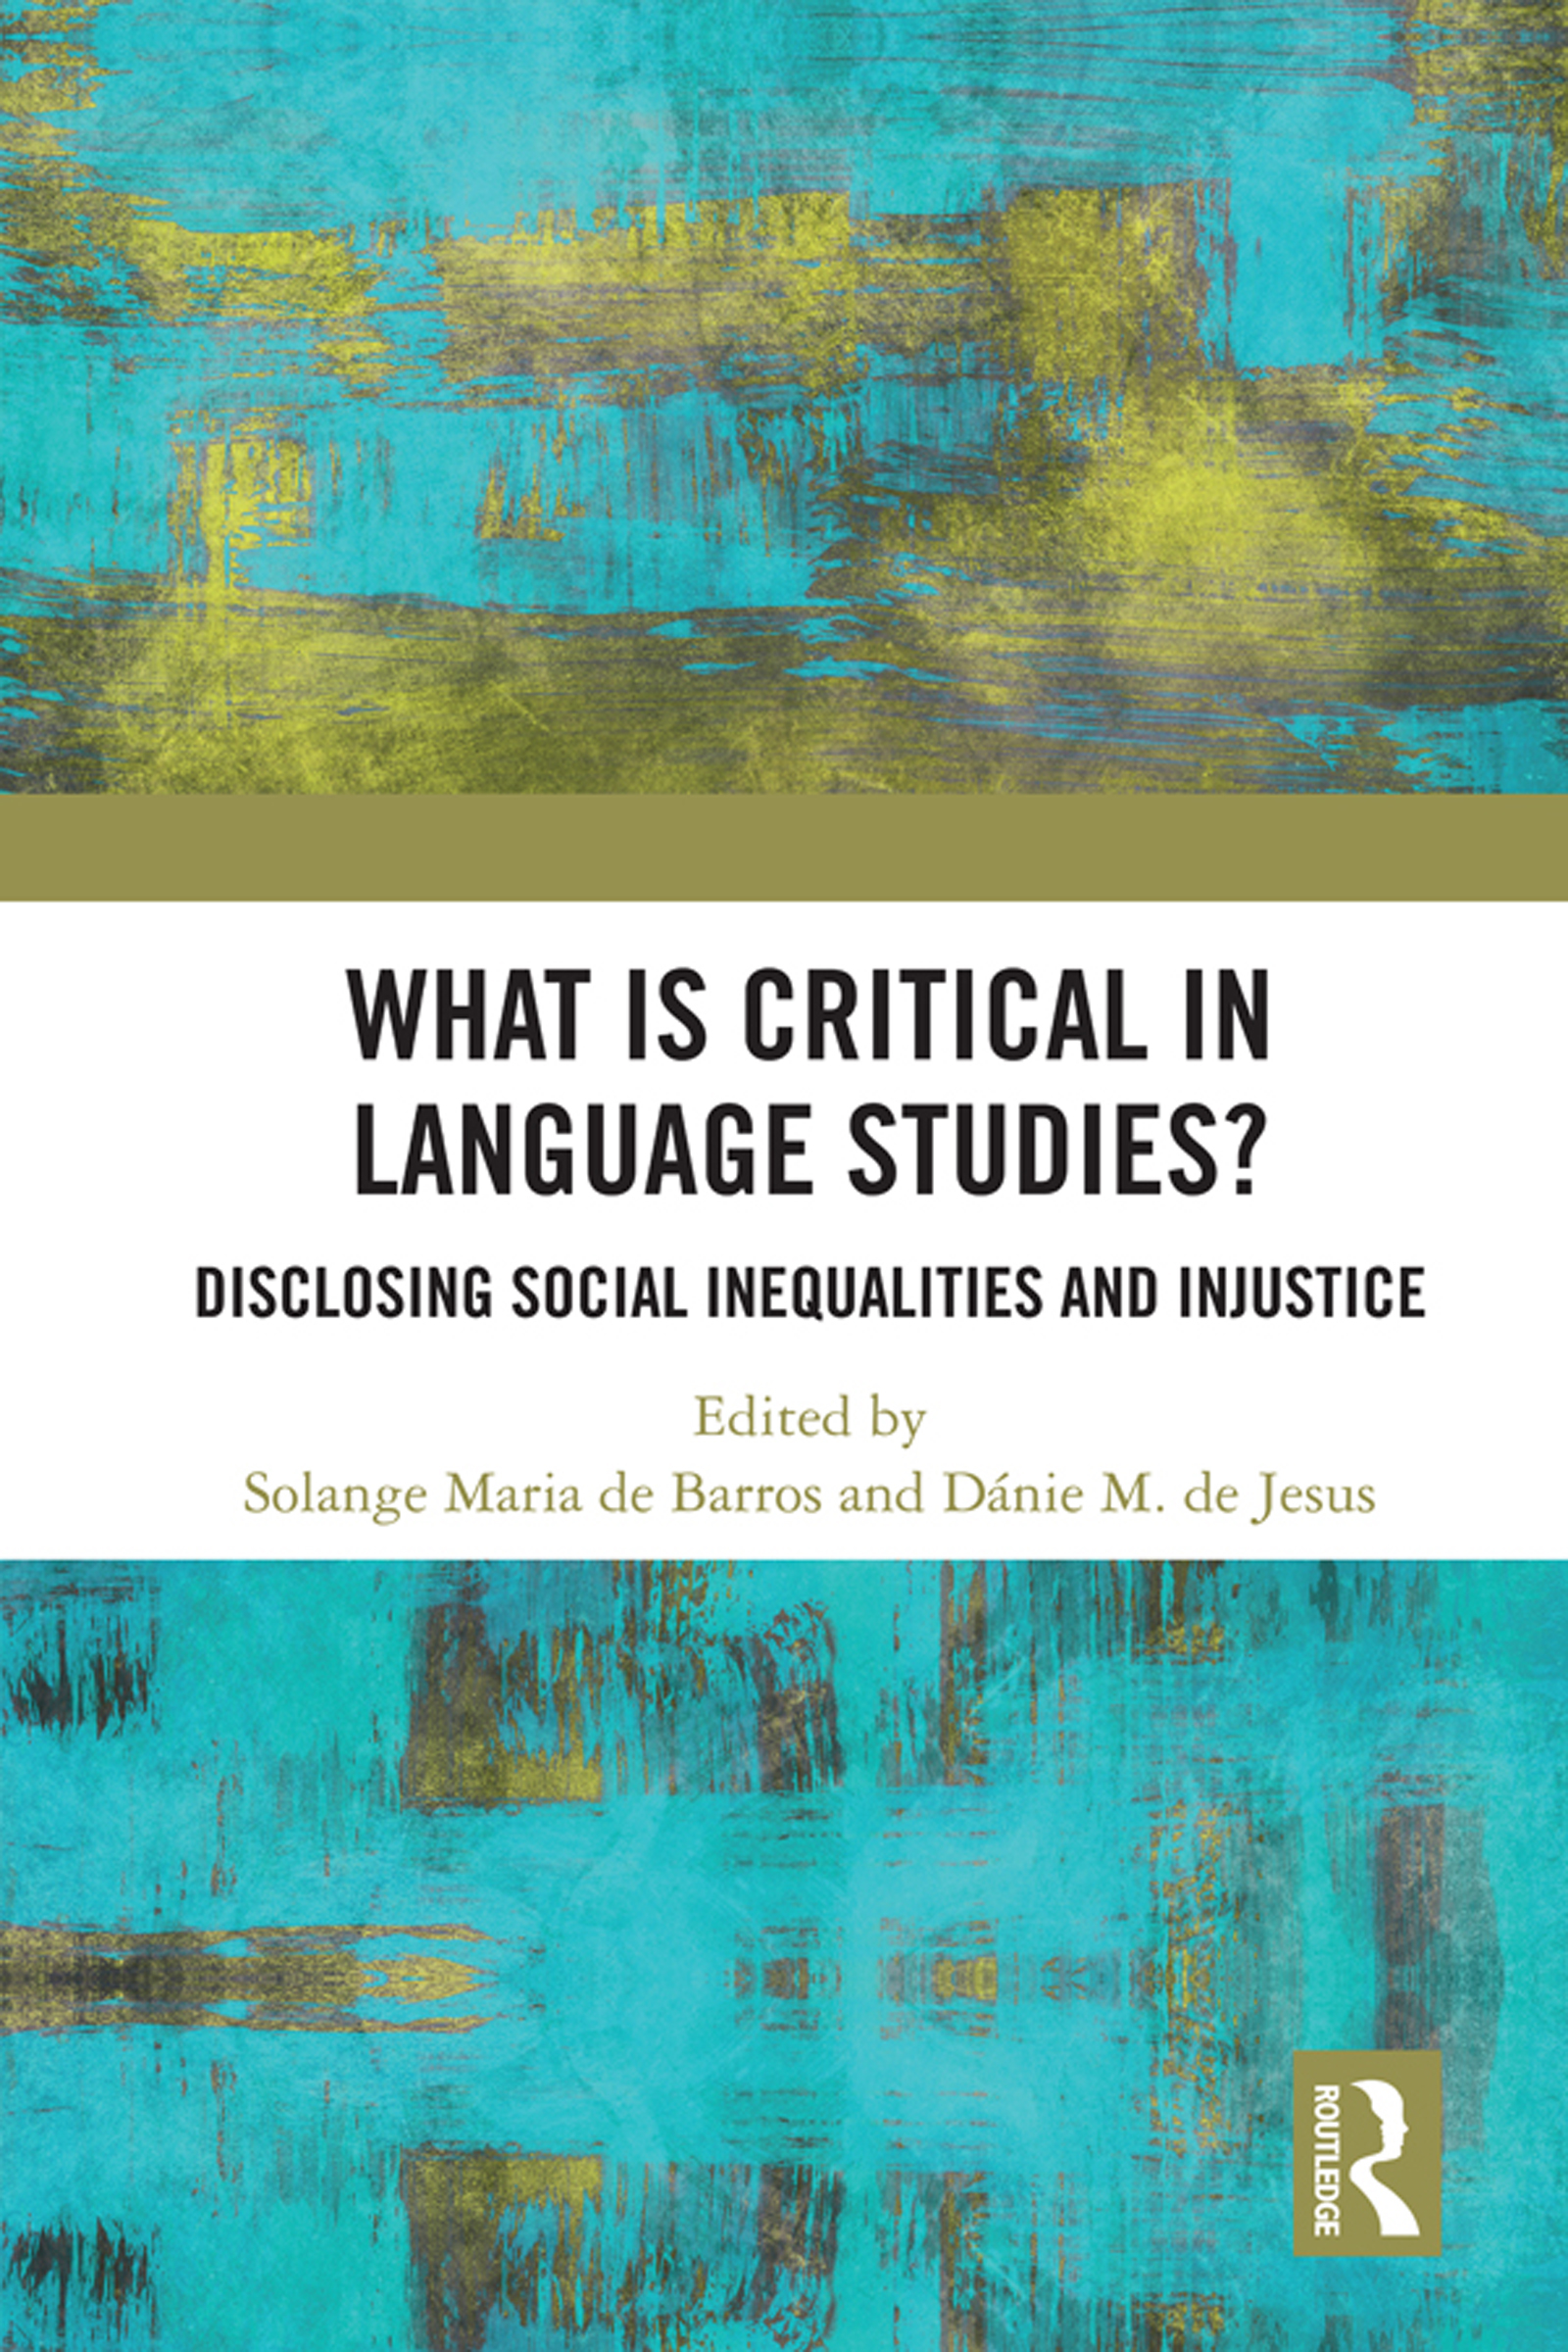 What is Critical in Language Studies?